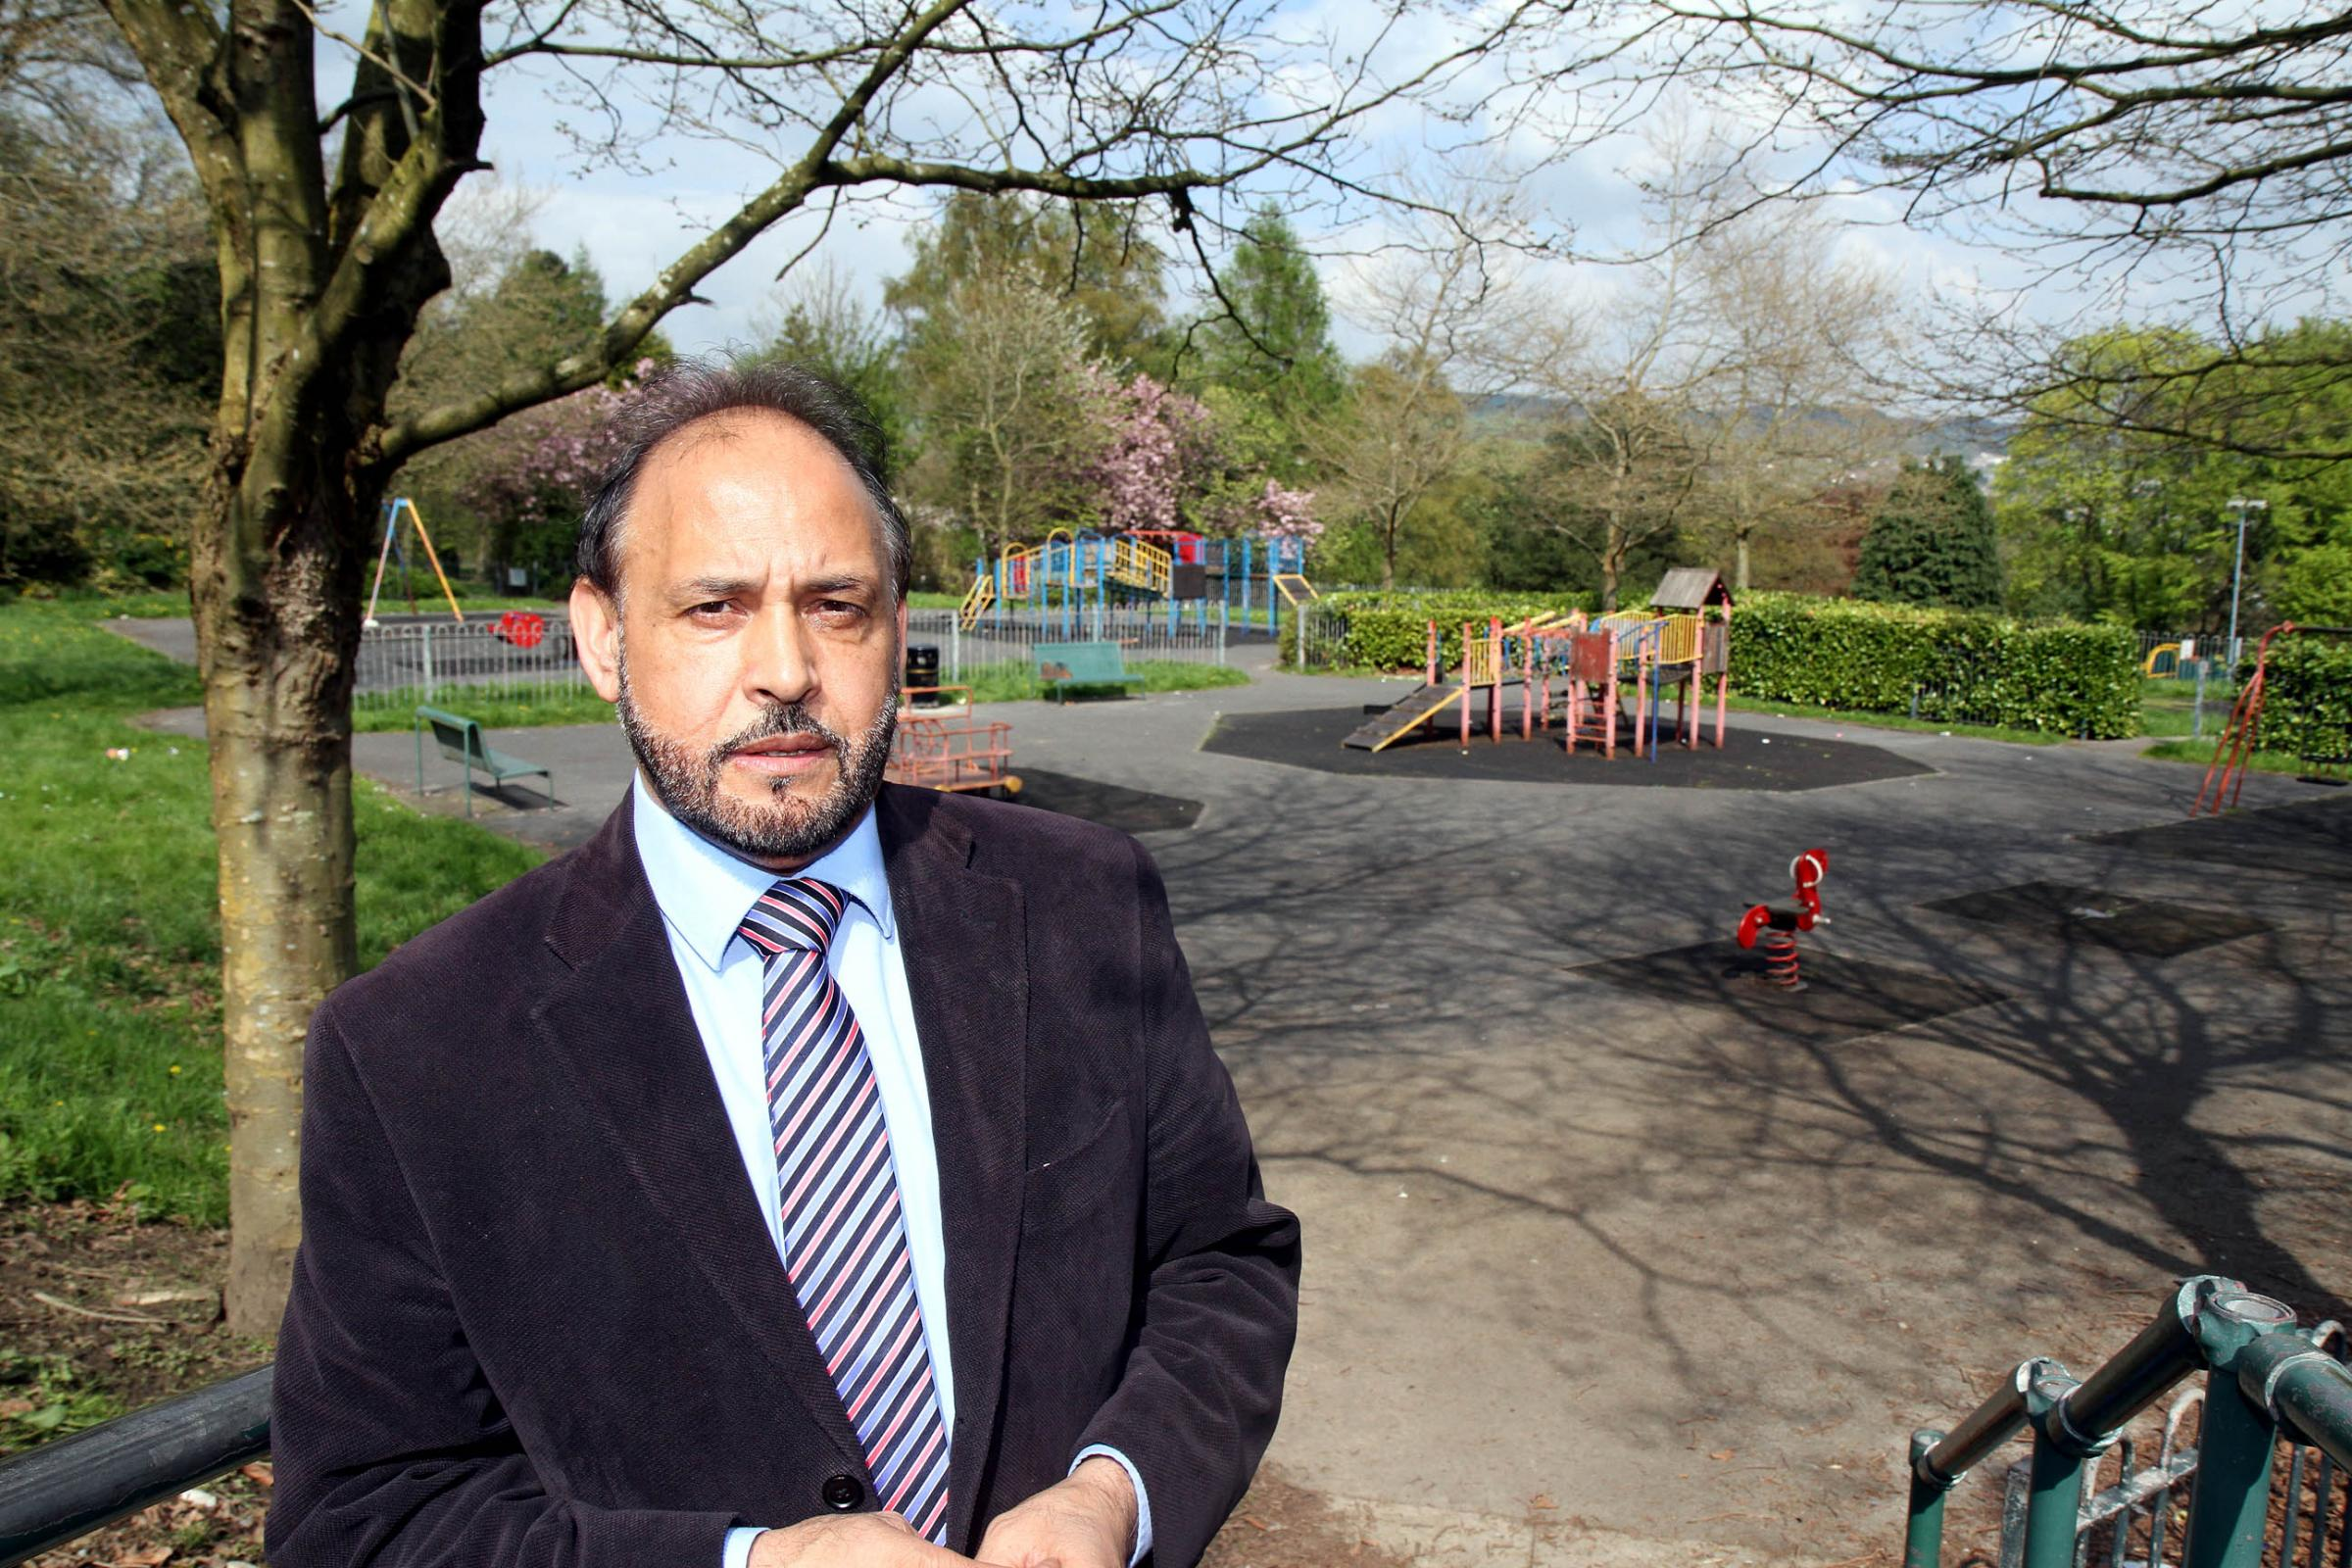 Councillor Abid Hussain at the children's play area in Devonshire Park